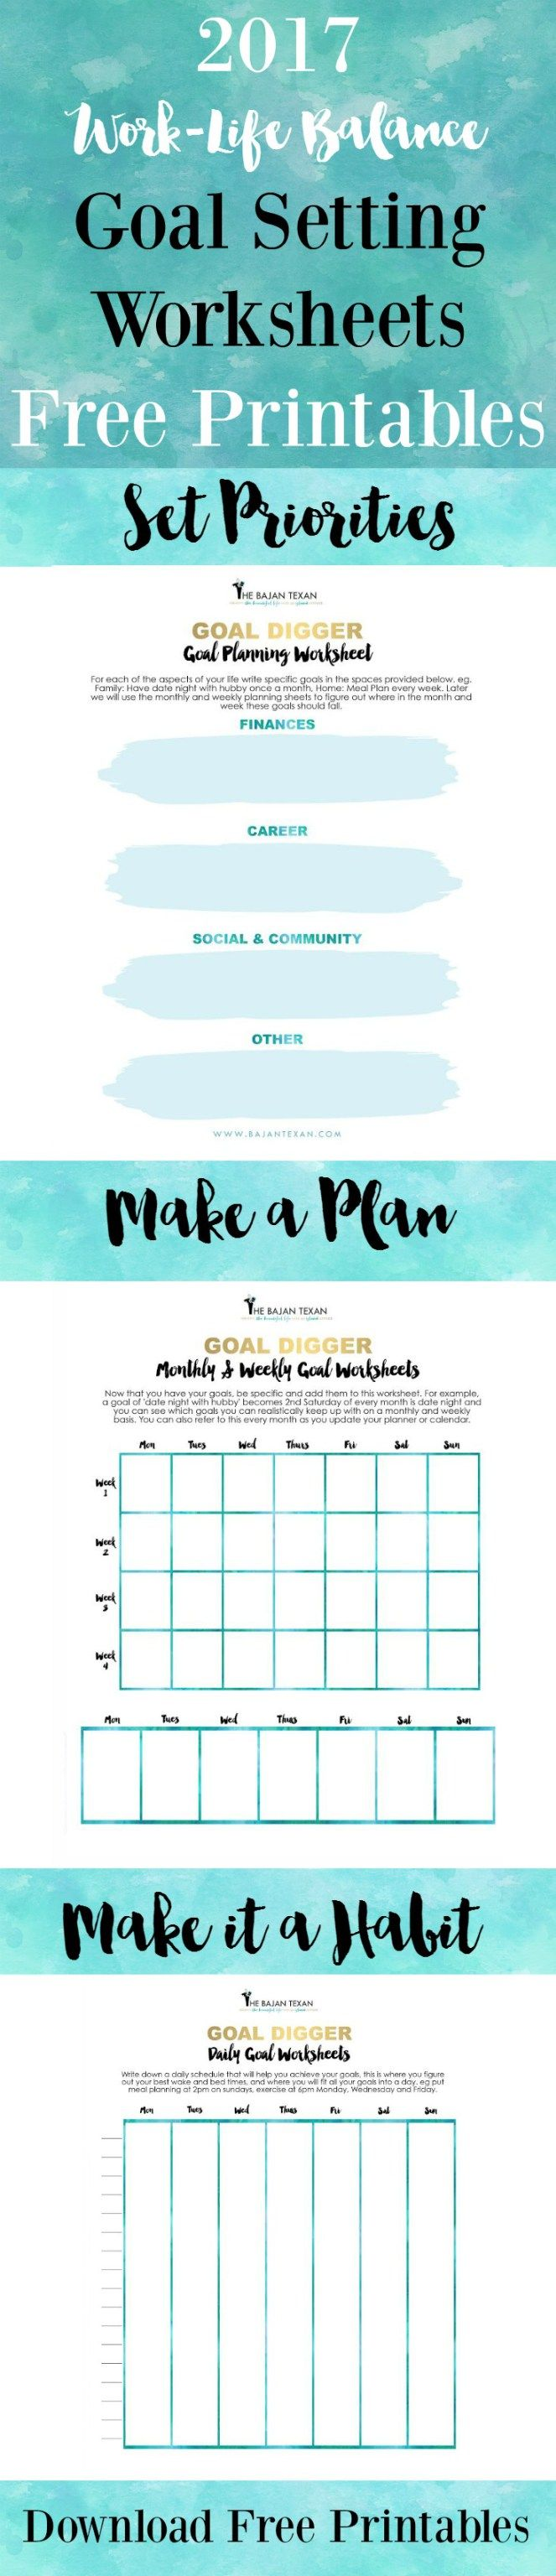 This isn't just your ordinary Free Goal Planning Worksheets, you can use these free printables any time of the year to make goals for yourself. Start today! {newsletter subscription required}